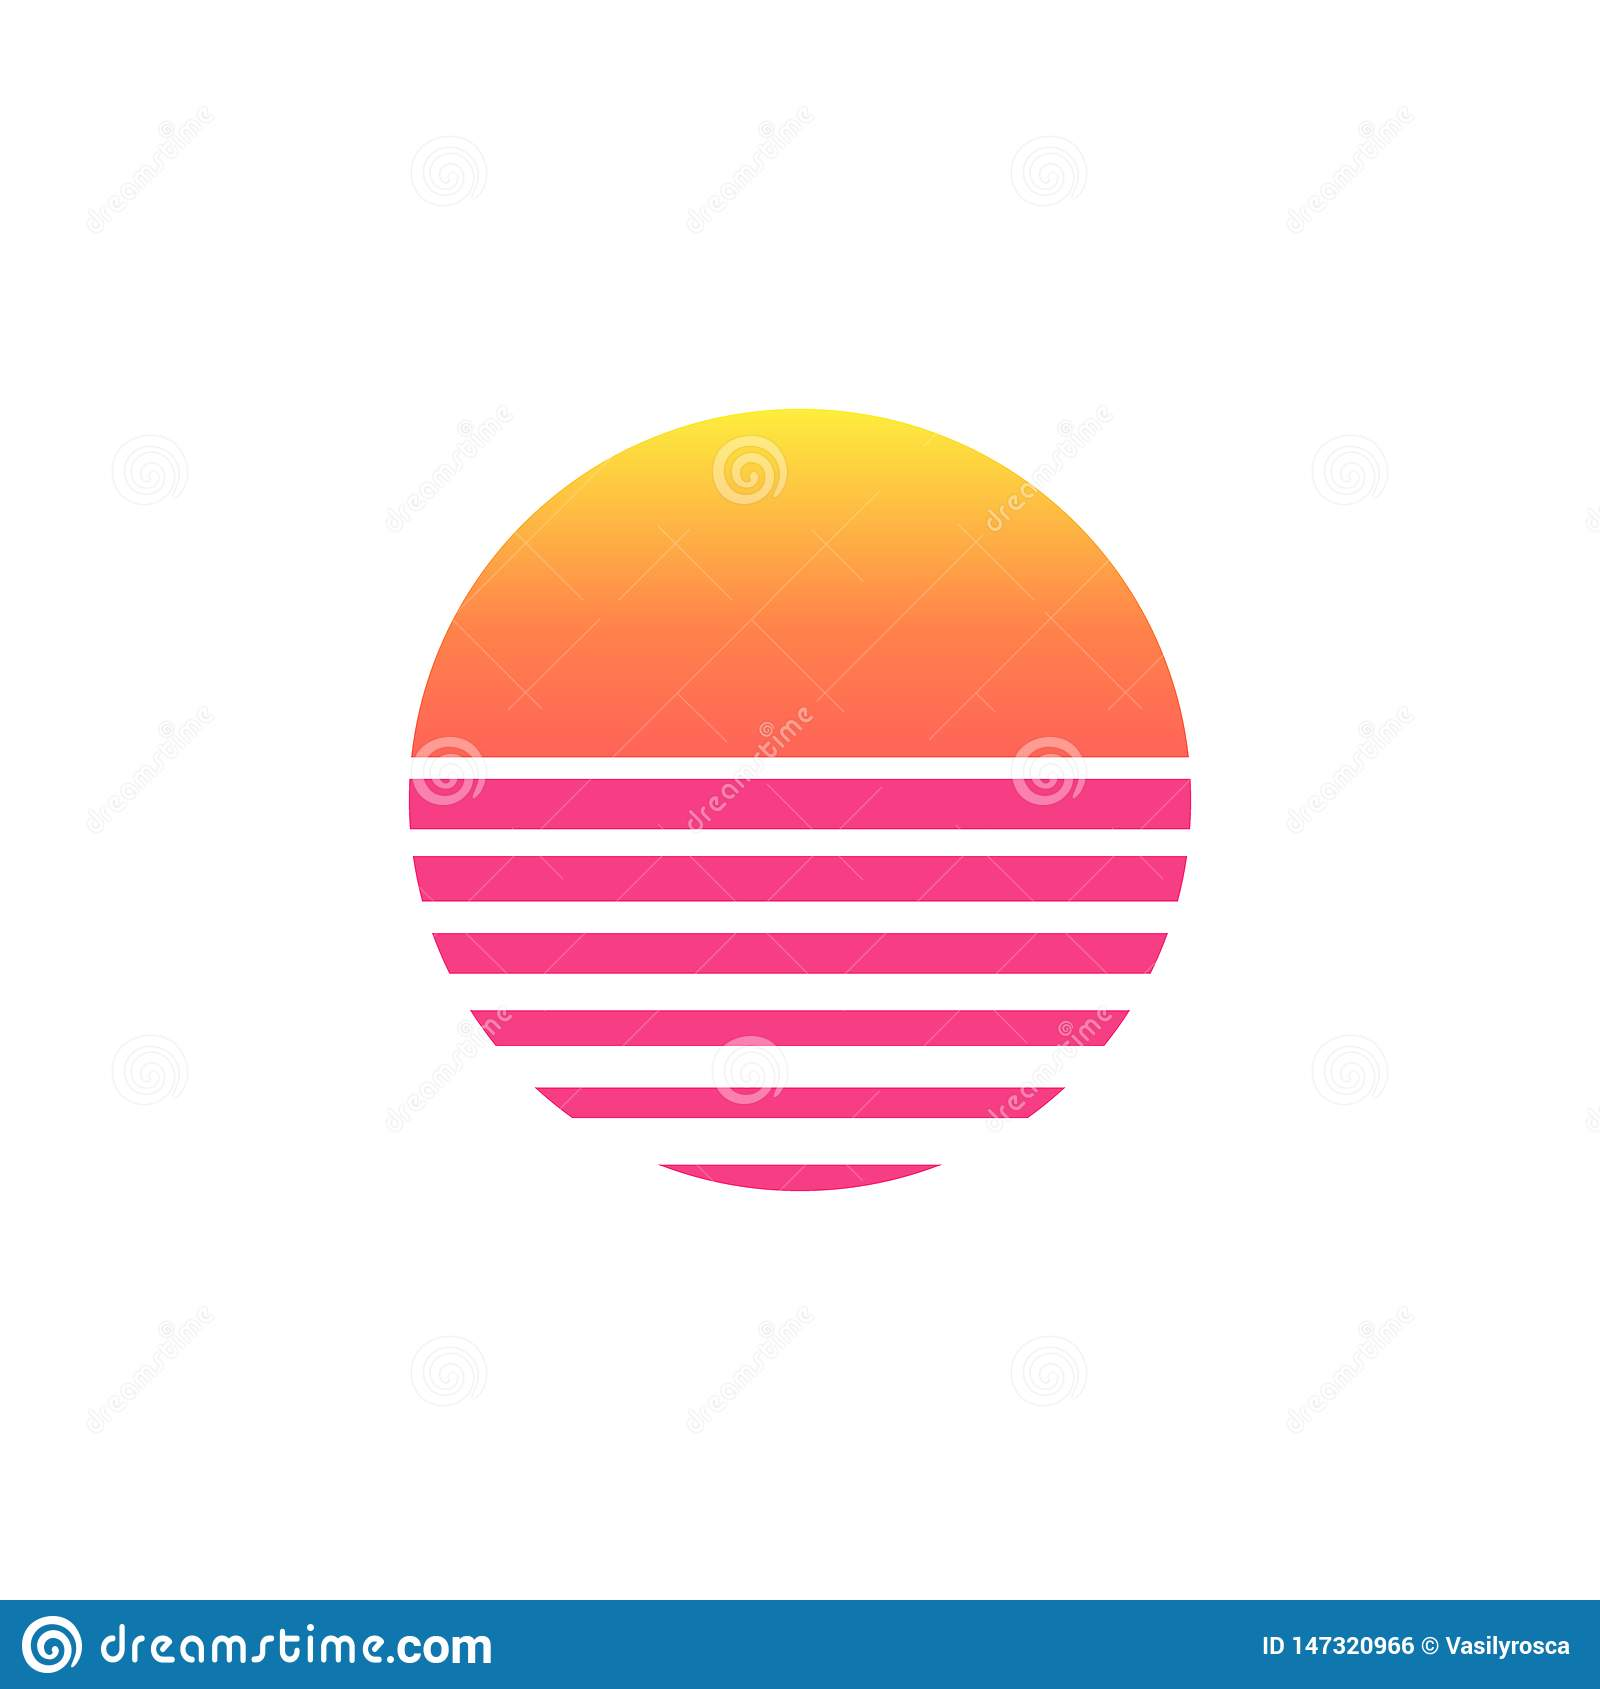 retro sunset circle stock illustrations 1 986 retro sunset circle stock illustrations vectors clipart dreamstime https www dreamstime com s sunset retro neon background s poster electro sun space vintage grid sunset icon s sunset retro neon background s poster electro image147320966